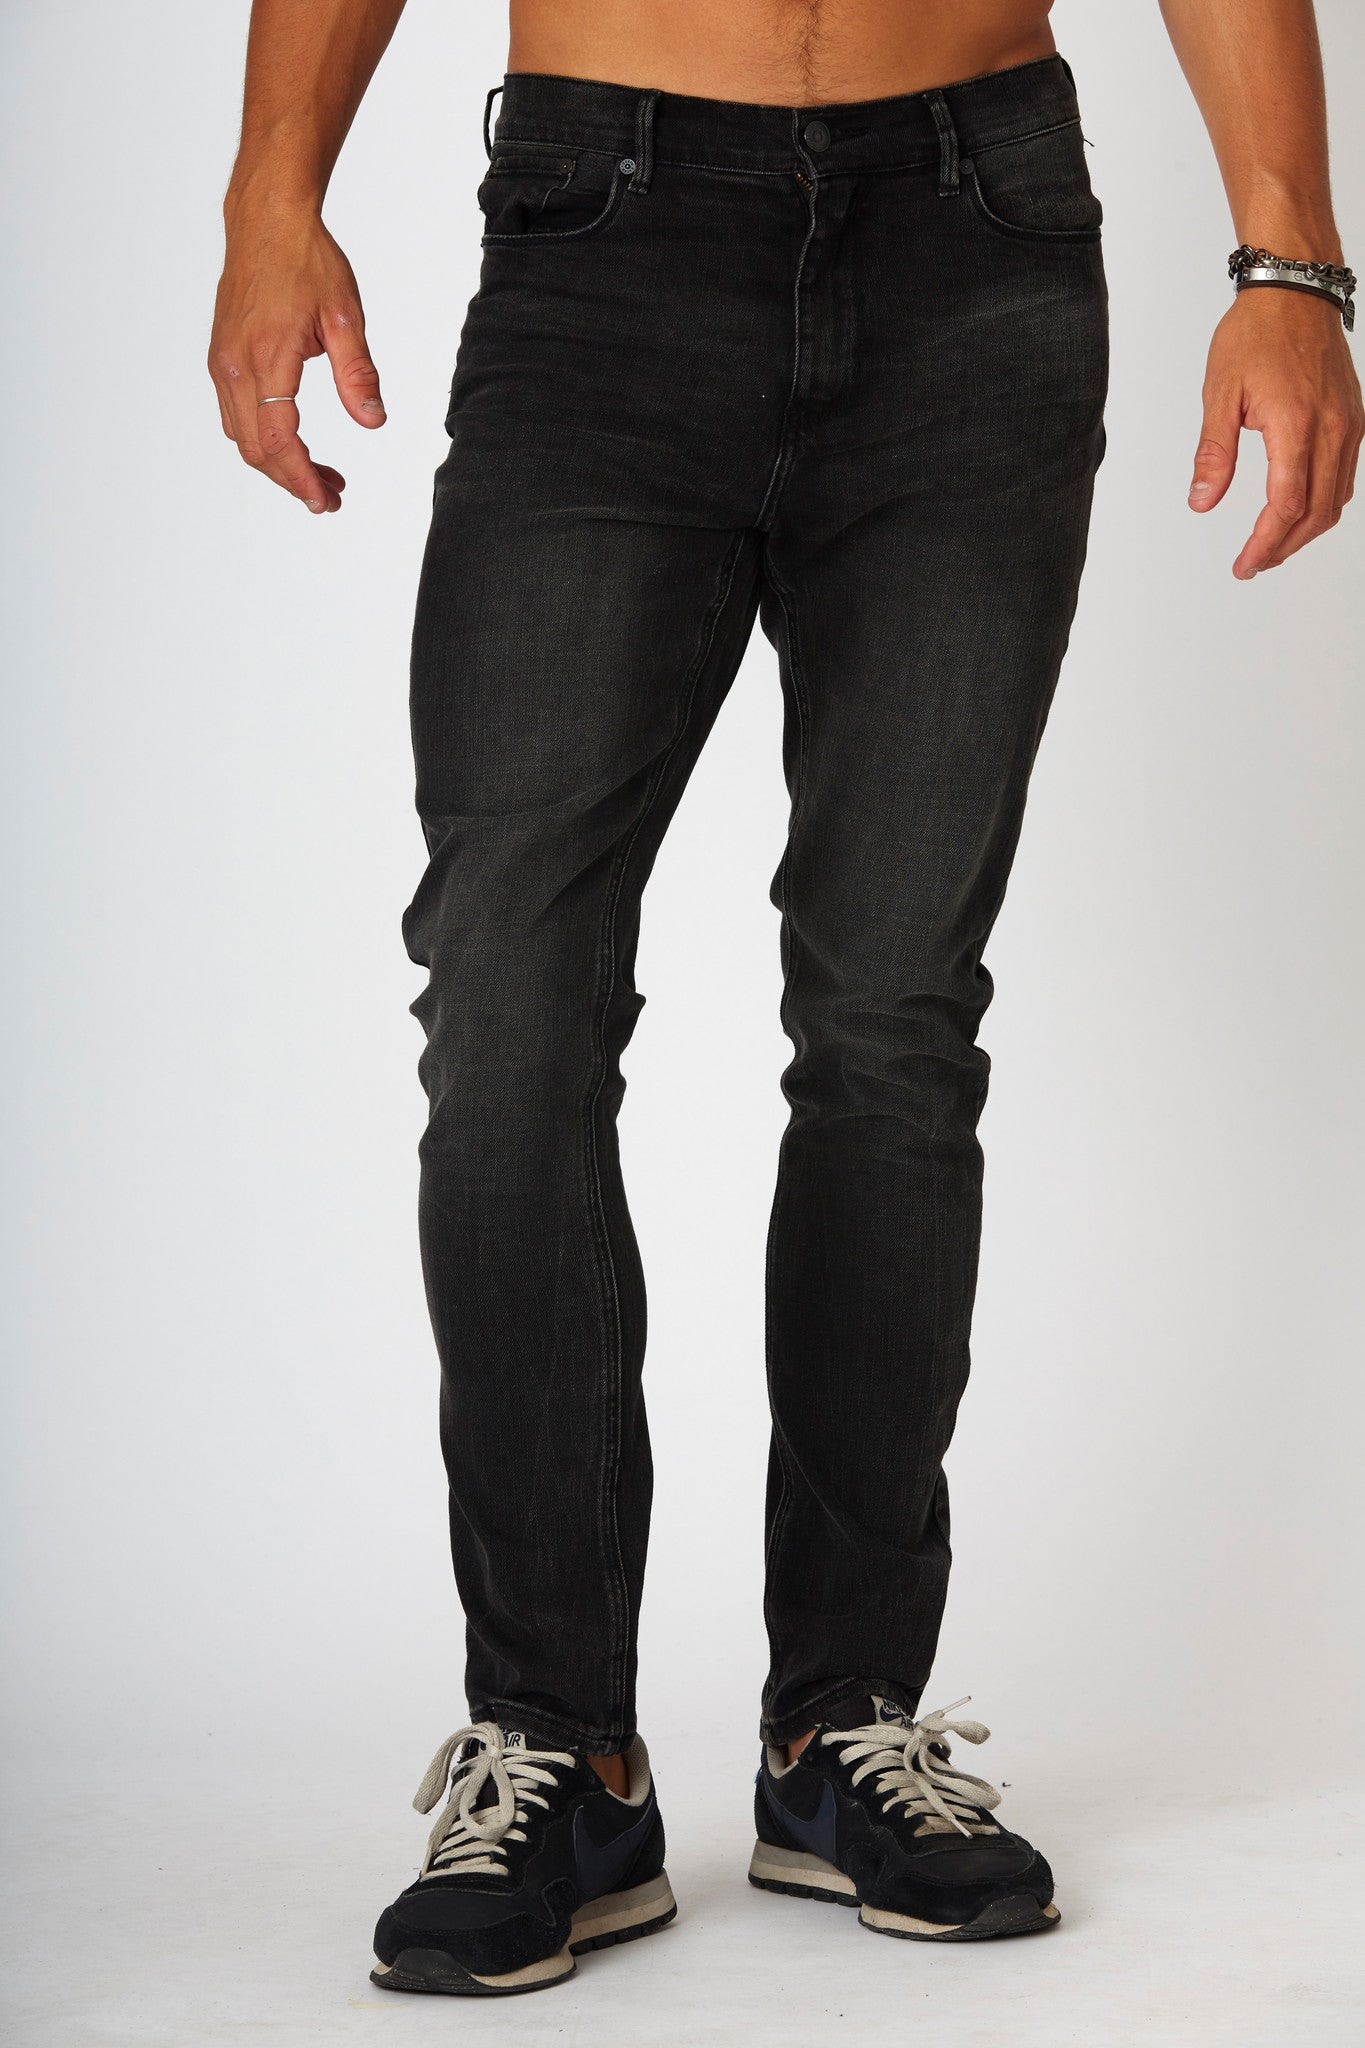 #2A30 Skinny Stretch Black Teak - denimcolab